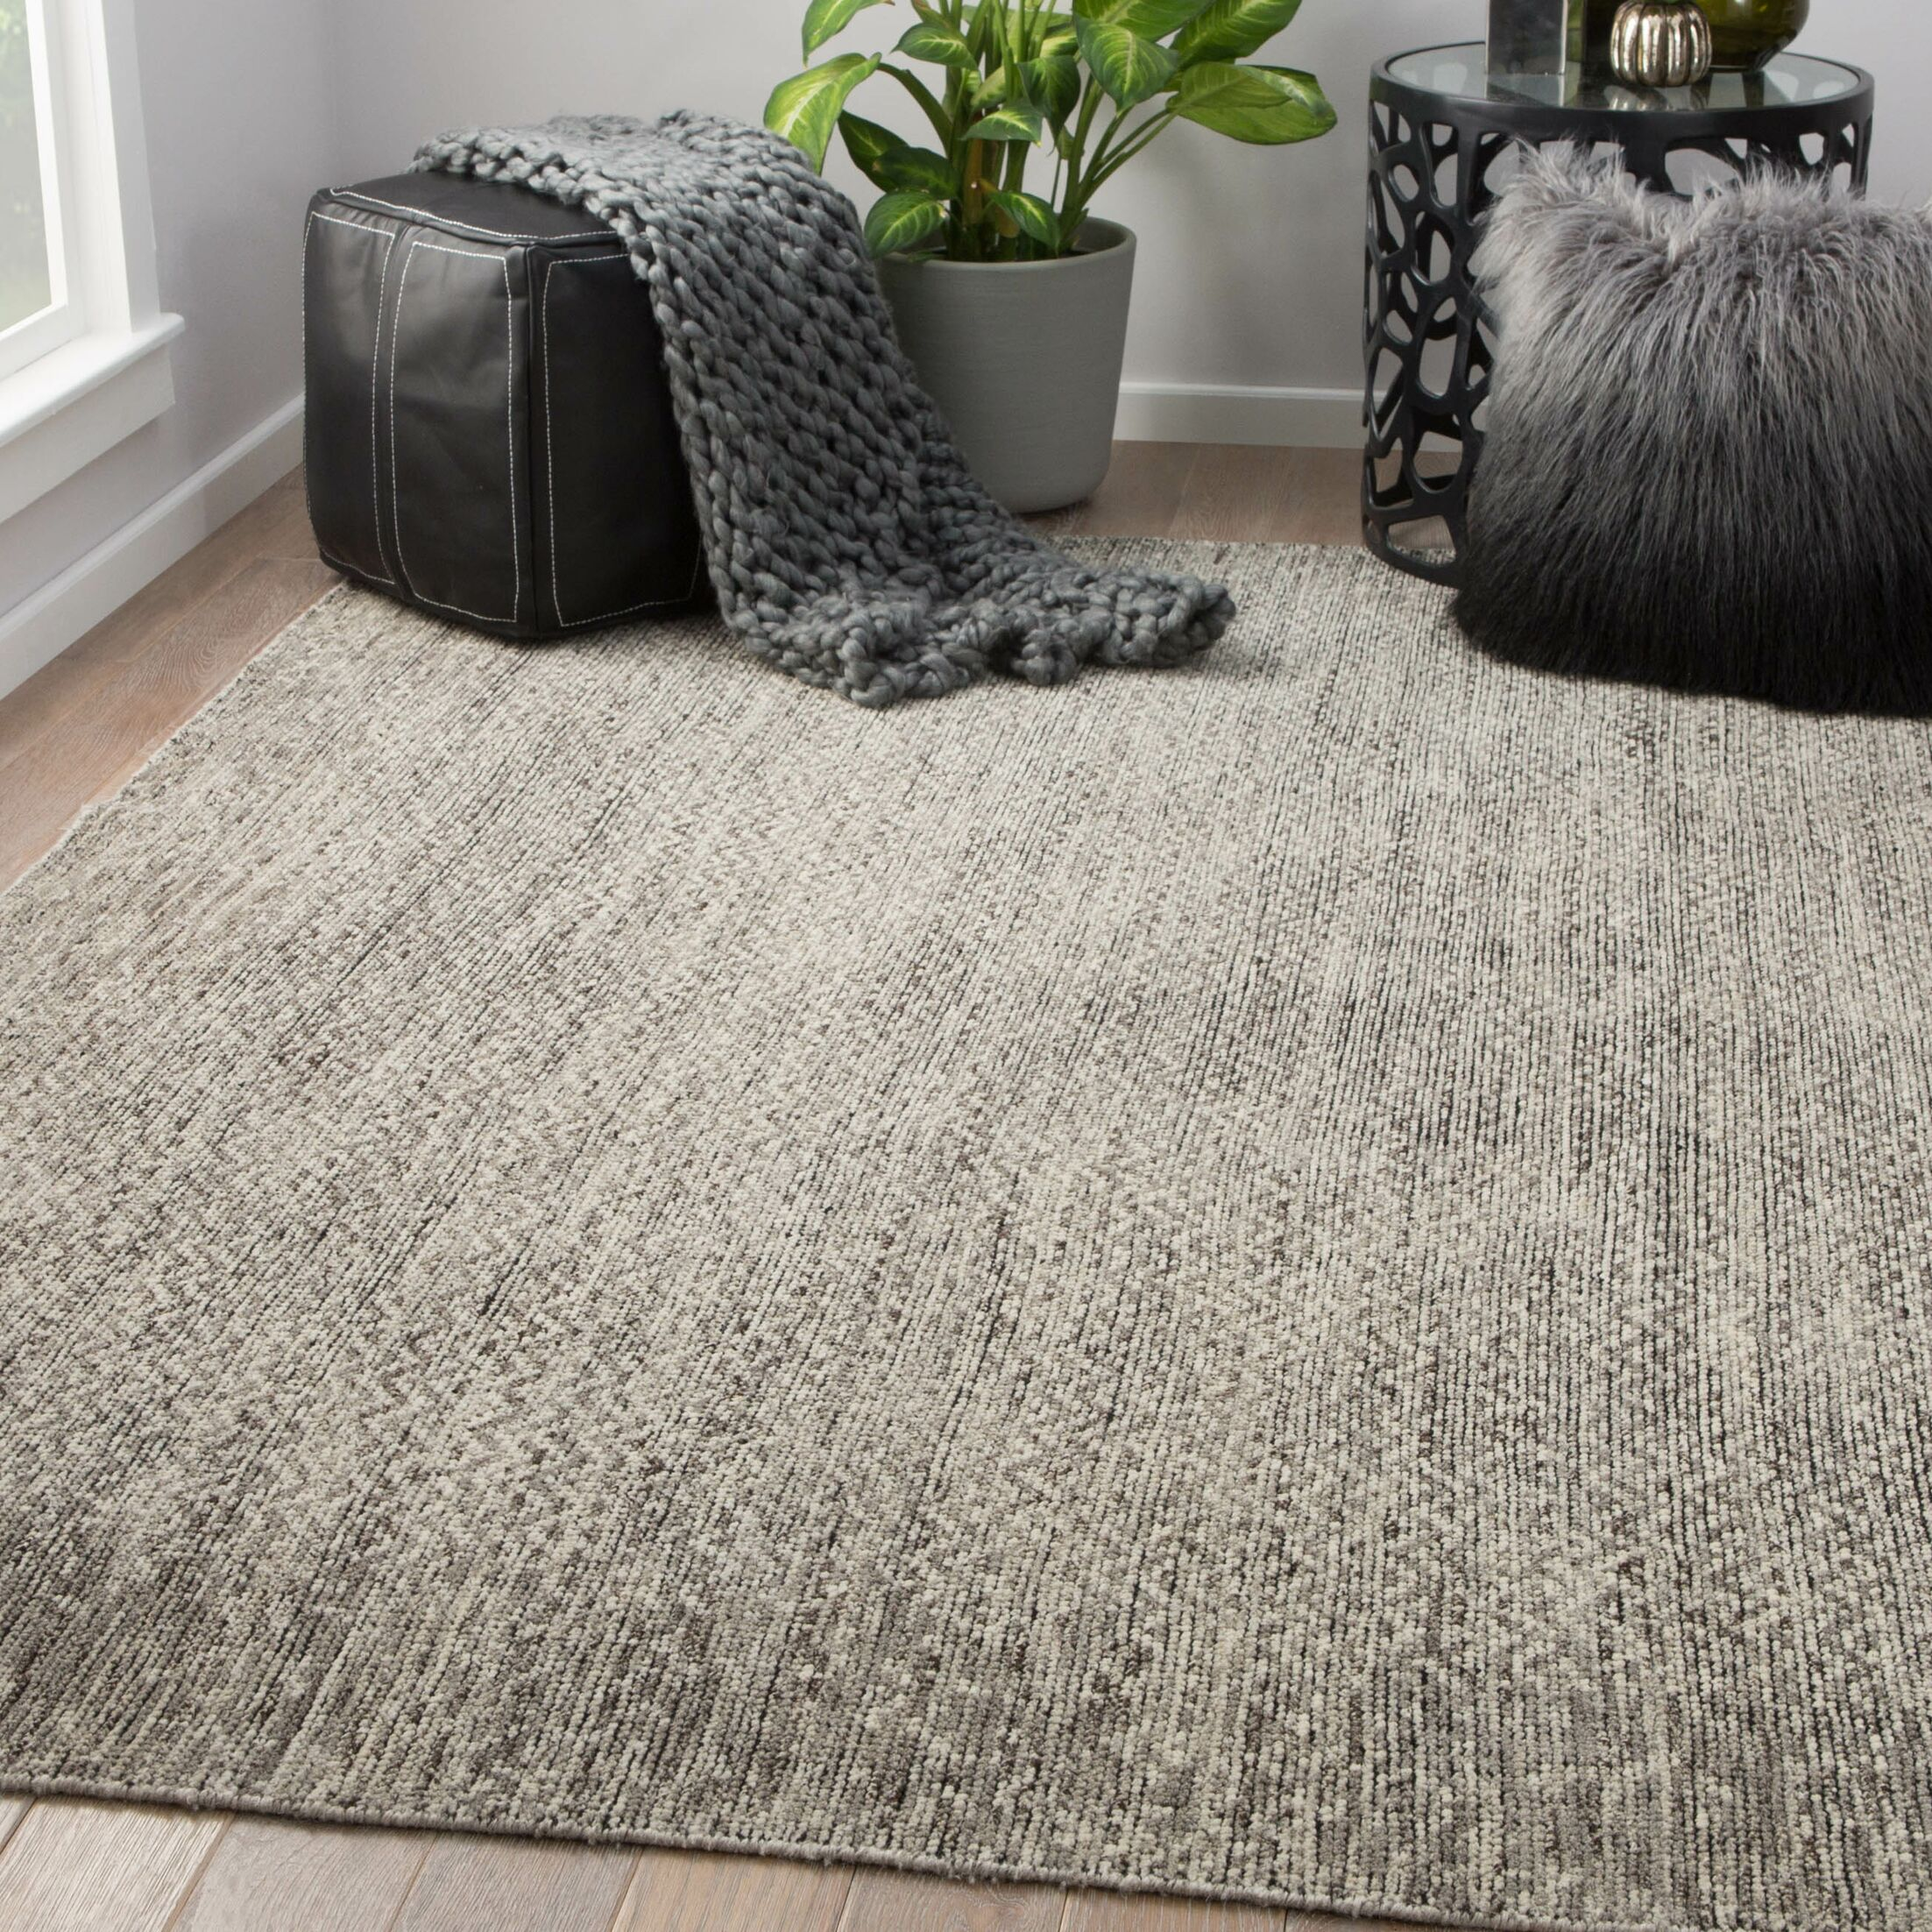 Magnuson Hand-Knotted Wool Fallen Rock/Oatmeal Area Rug Rug Size: Rectangle 9' x 12'